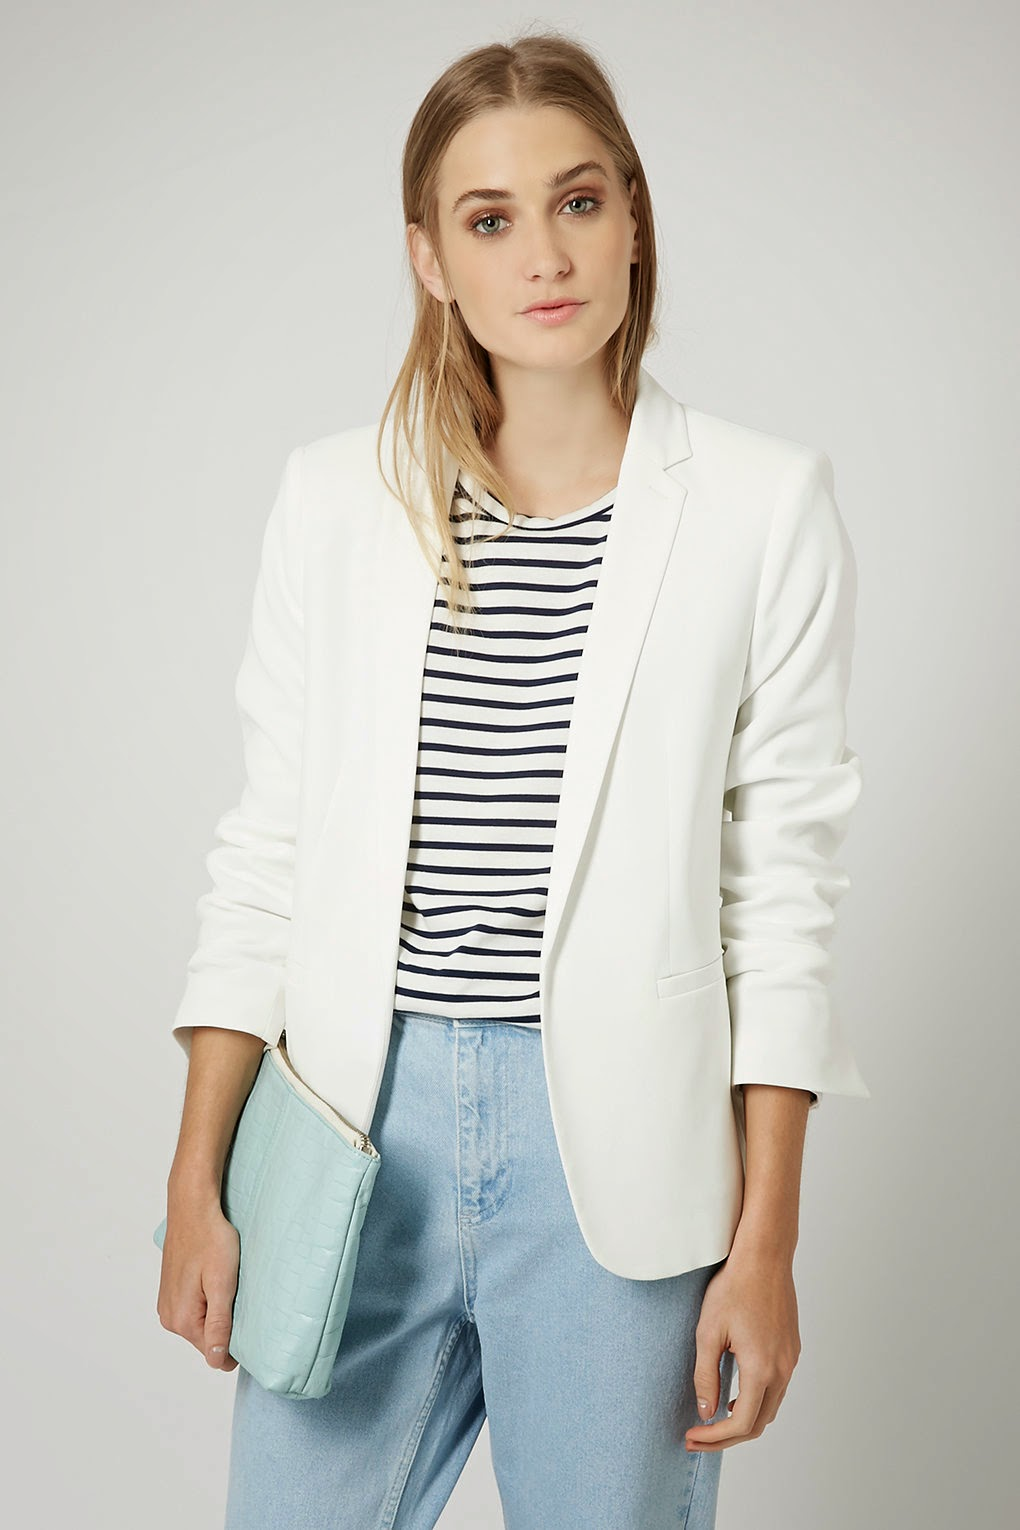 topshop white blazer review, white suit jacket 2015,